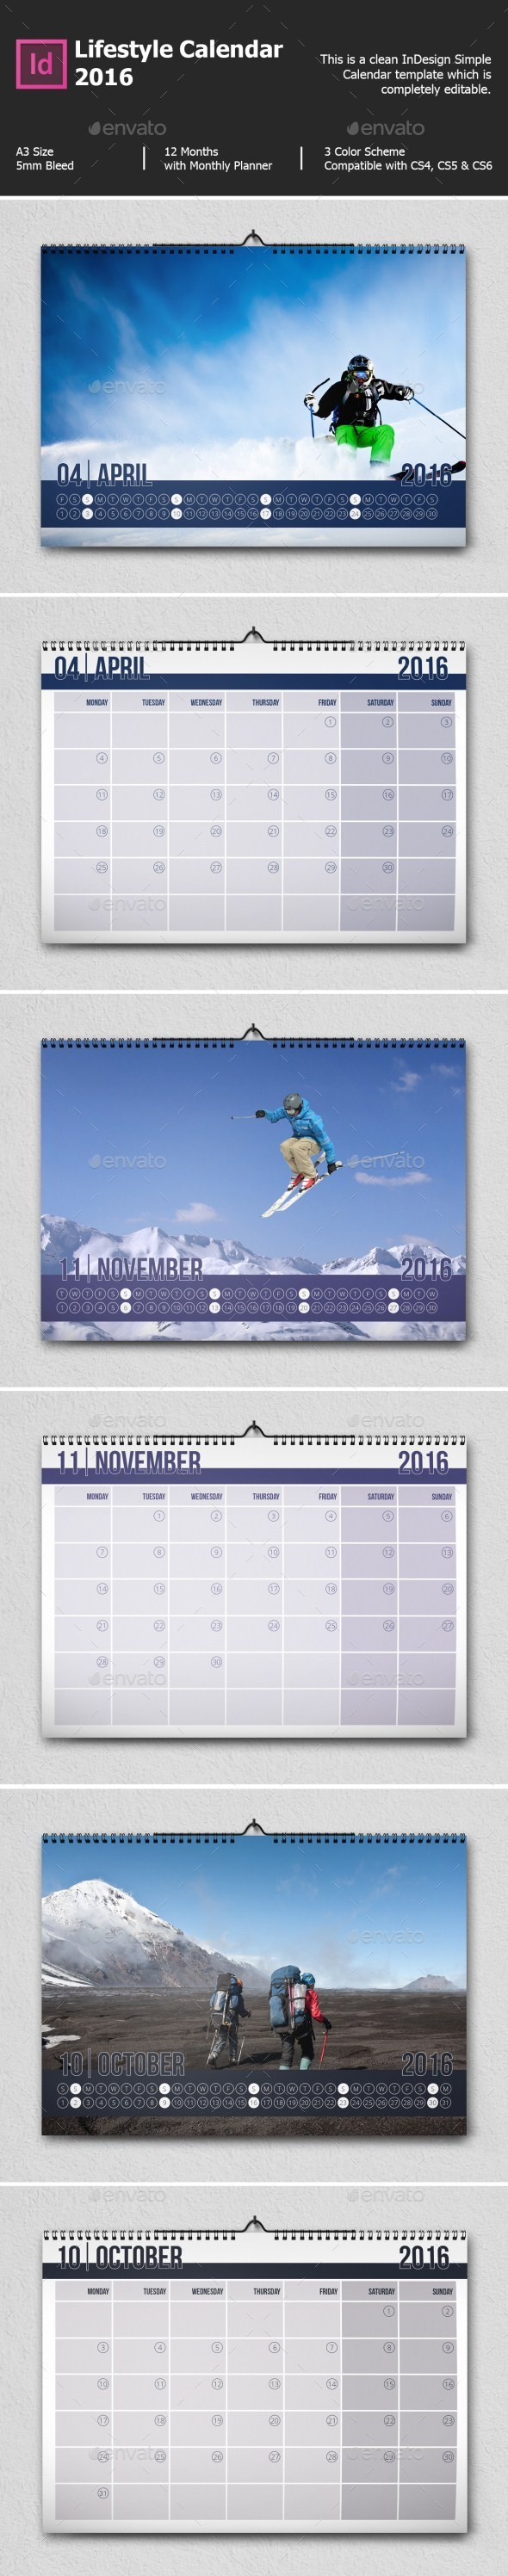 Lifestyle Calendar 2016 - Calendars Stationery